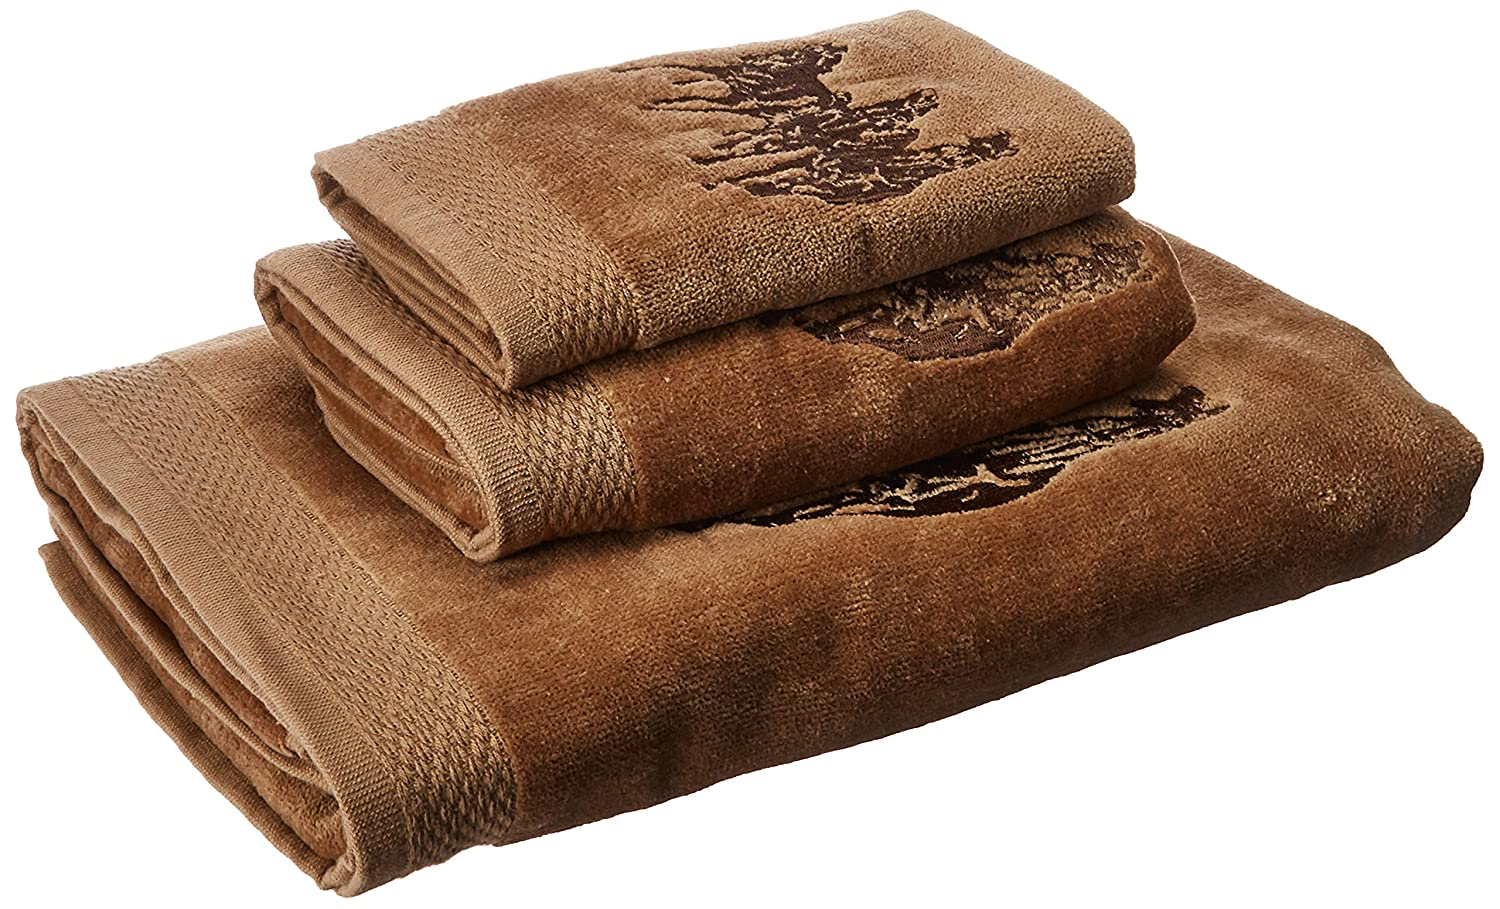 HiEnd Accents 3-Horse Embroidered Western Towel Set, Mocha